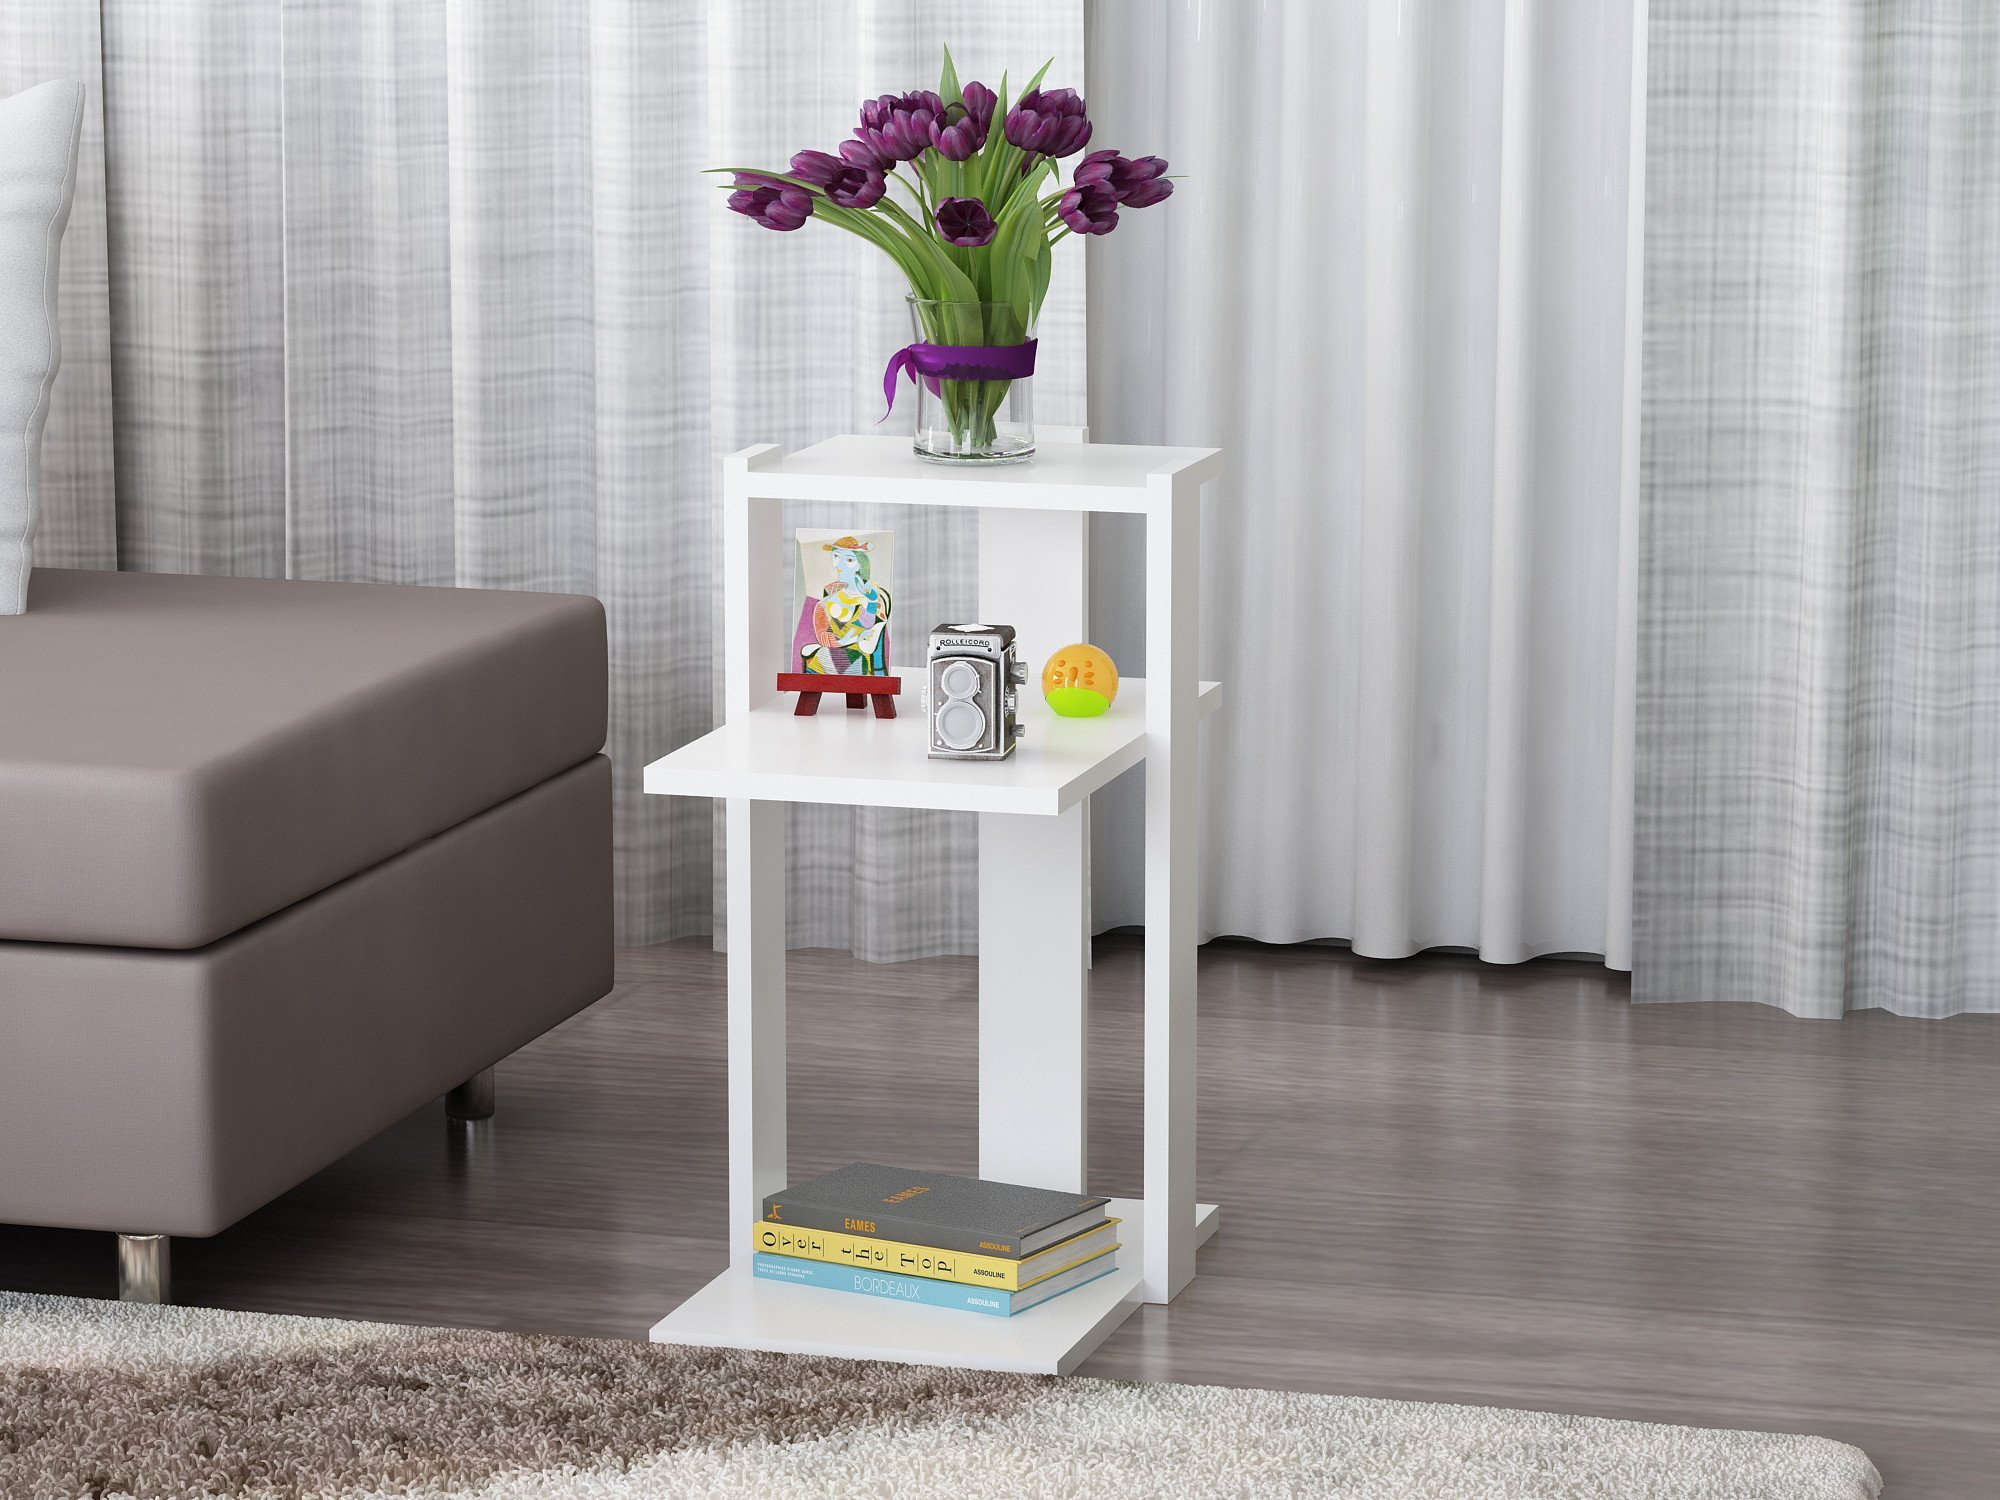 Side Table, 100% Melamine Coated Particle Board - Modern White Table, Two Shelves Tea Table, Hidden Casters - Size (17.7'' x 23.6'' x 11.8'') - Perfect Choice for Home & Office, Living Room, Bedroom